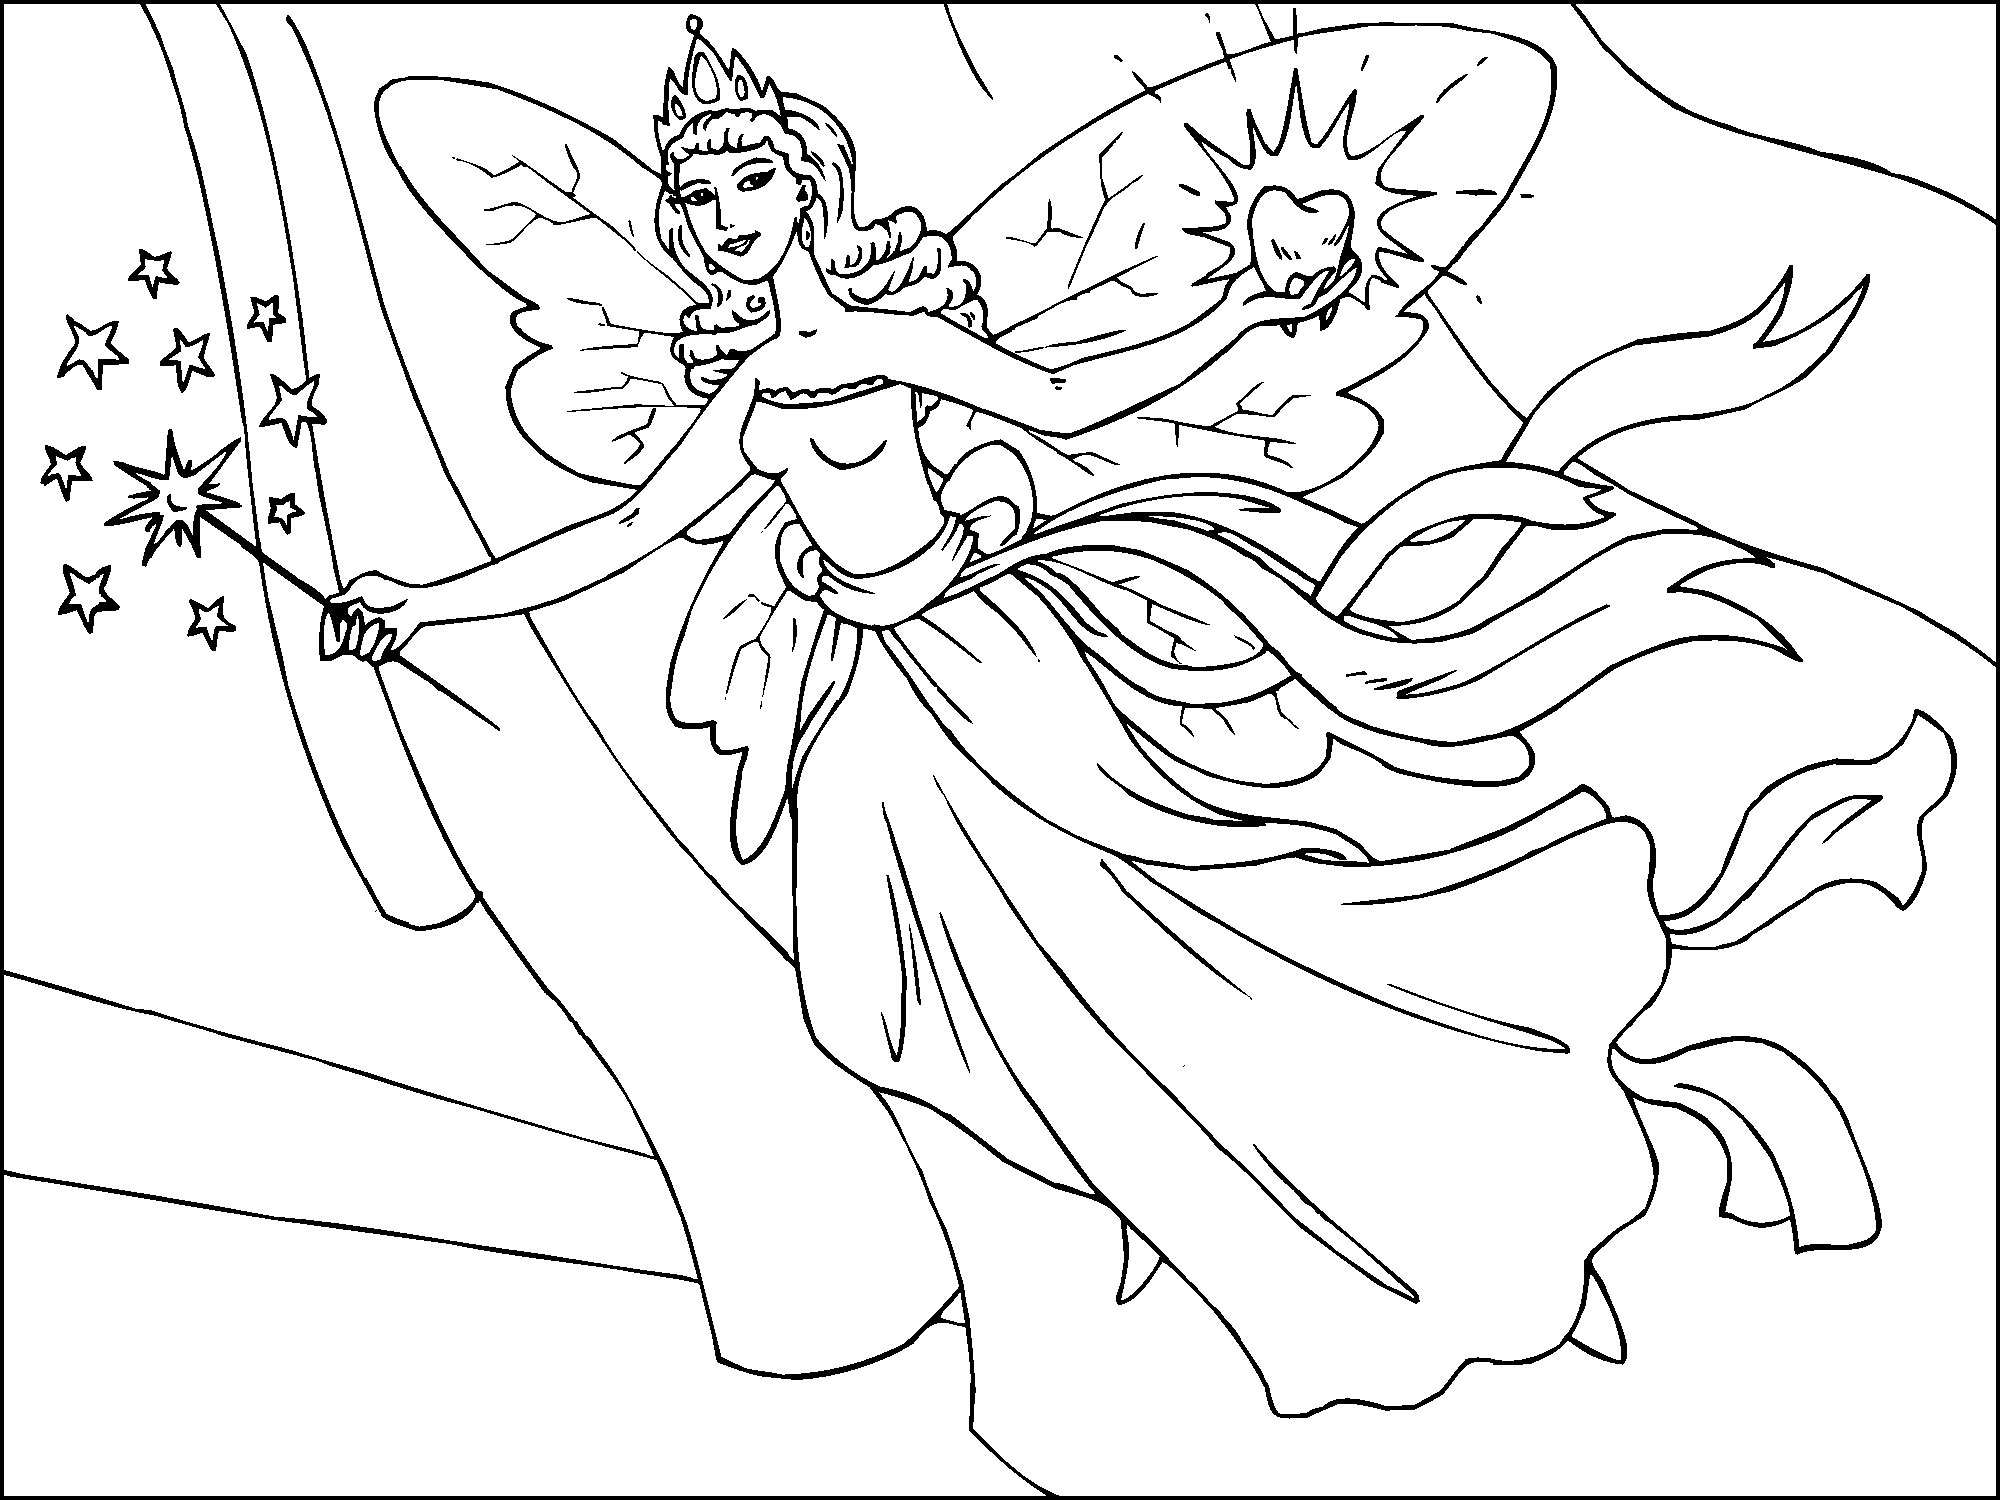 printable fairie coloring pages - photo#12